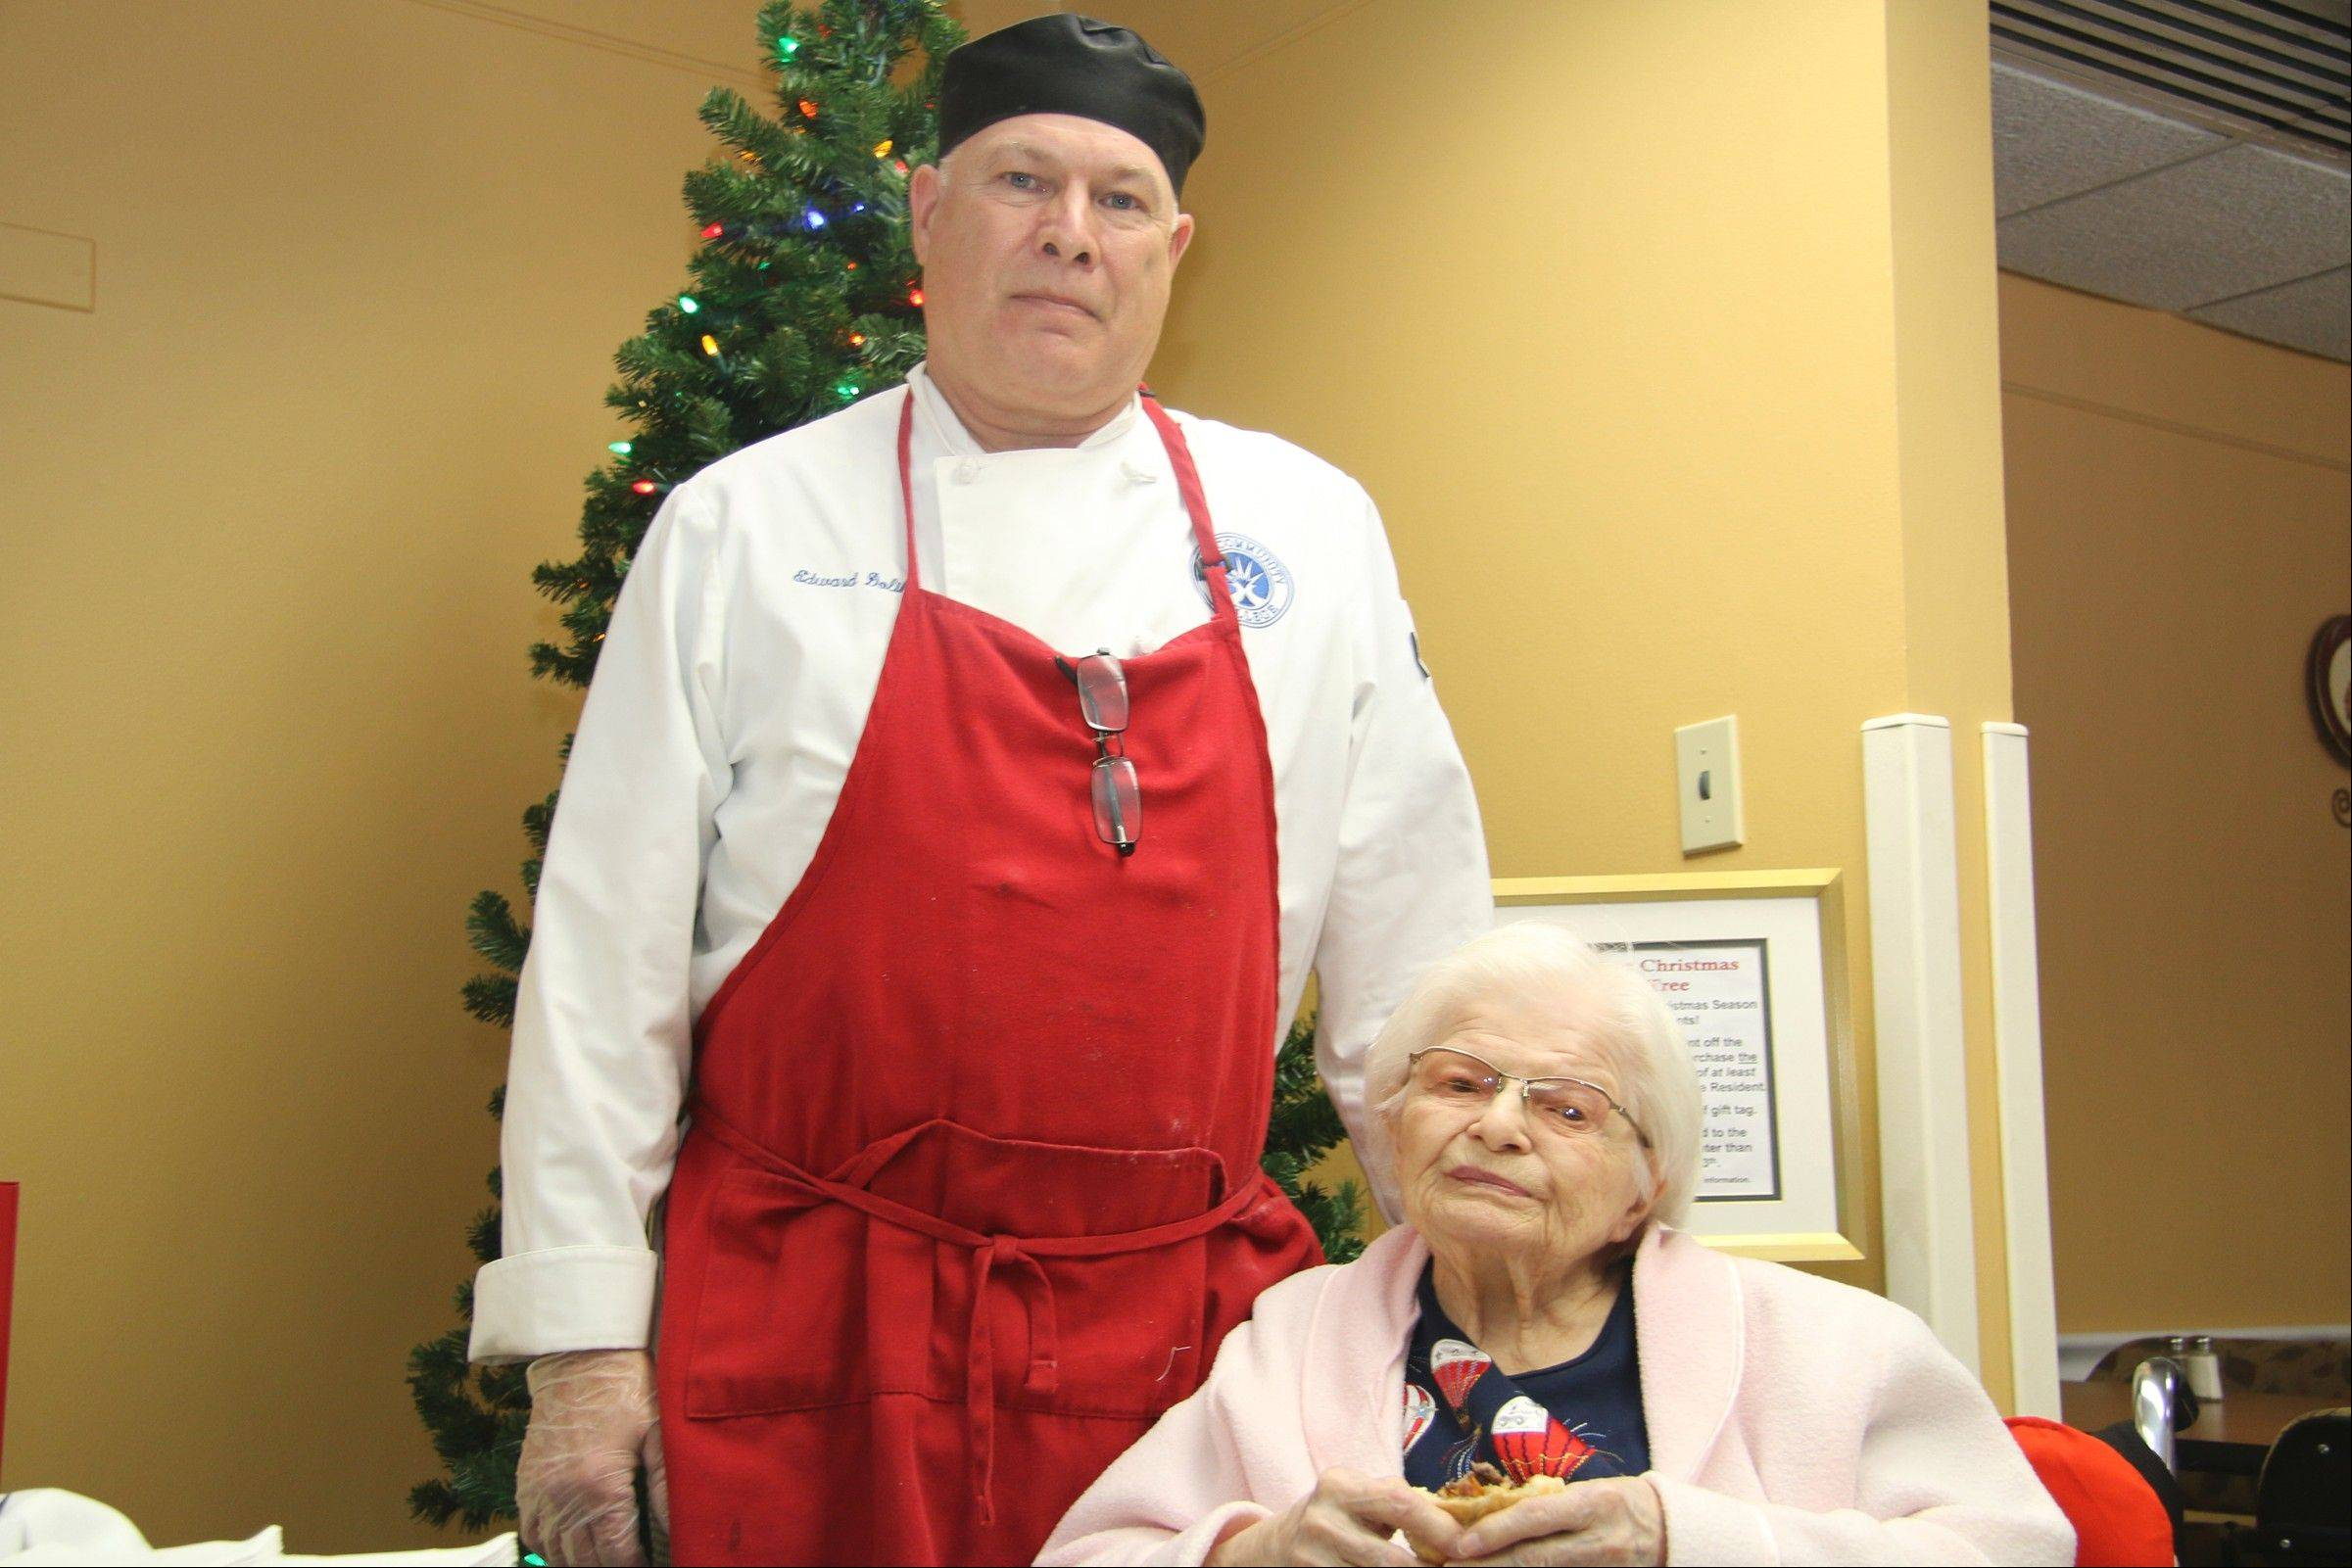 Ed Dolik, and his mother, Mildred Dolik, at the Lutheran Home on Tuesday.